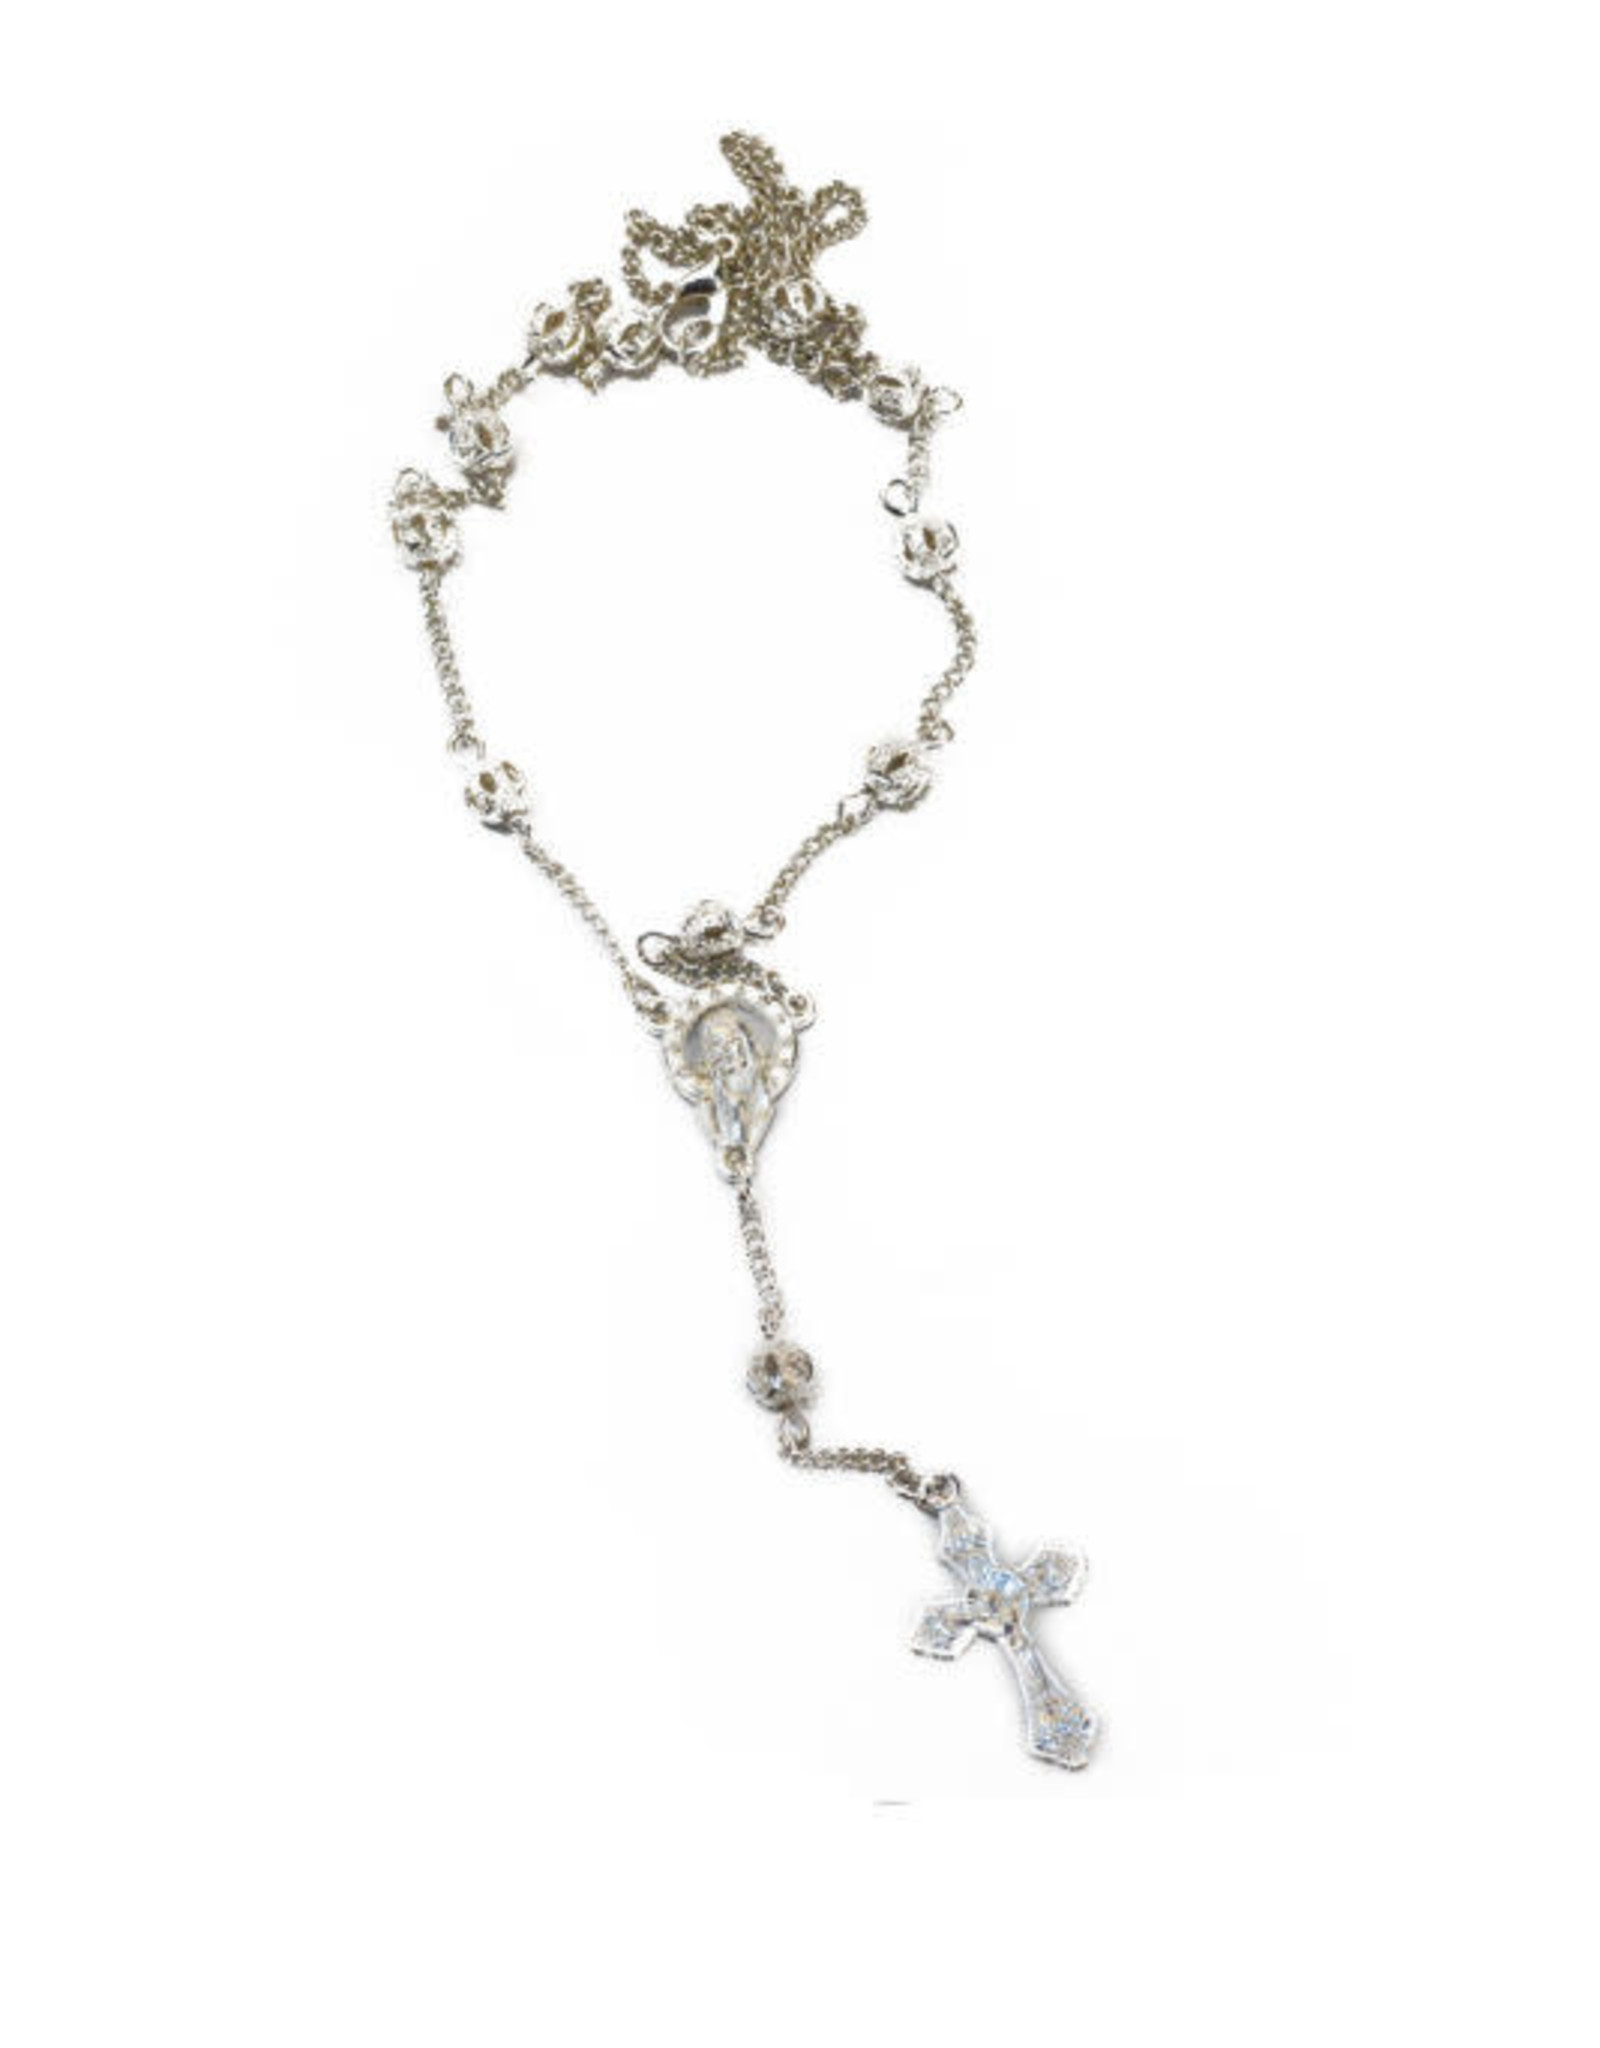 Siver color Rosary Necklace